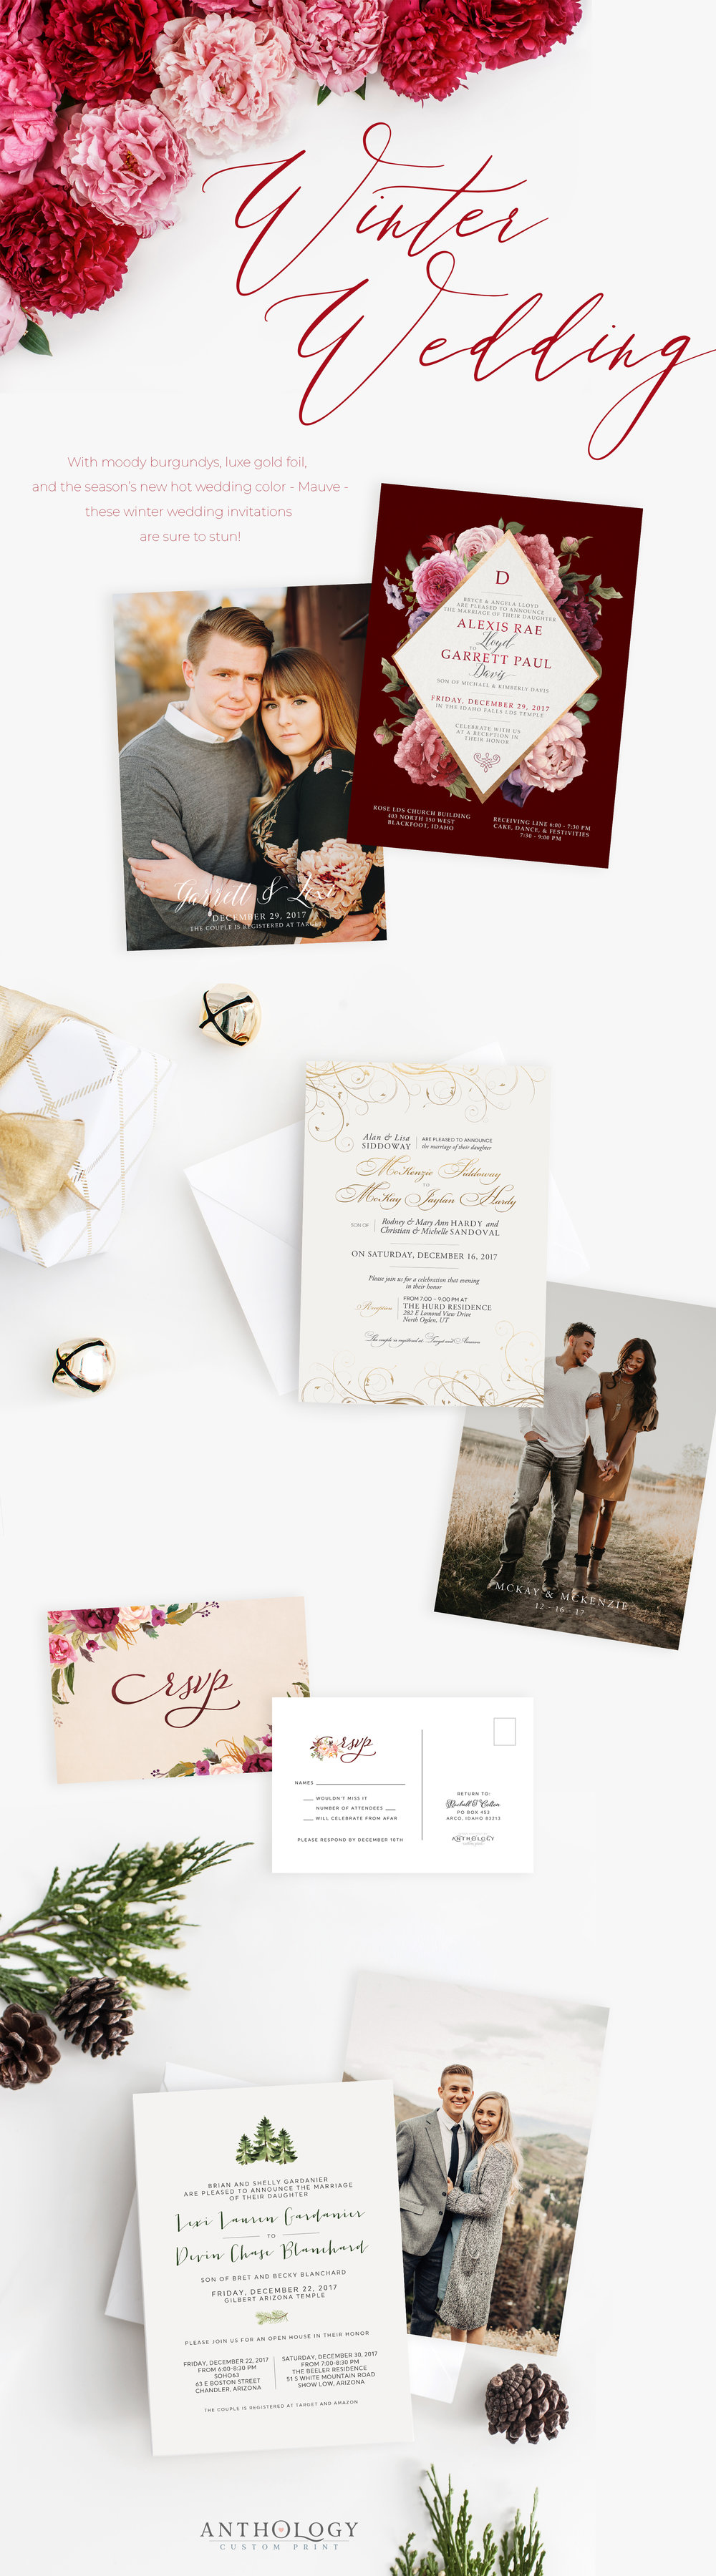 WinterWeddingInvitationSamples.jpg